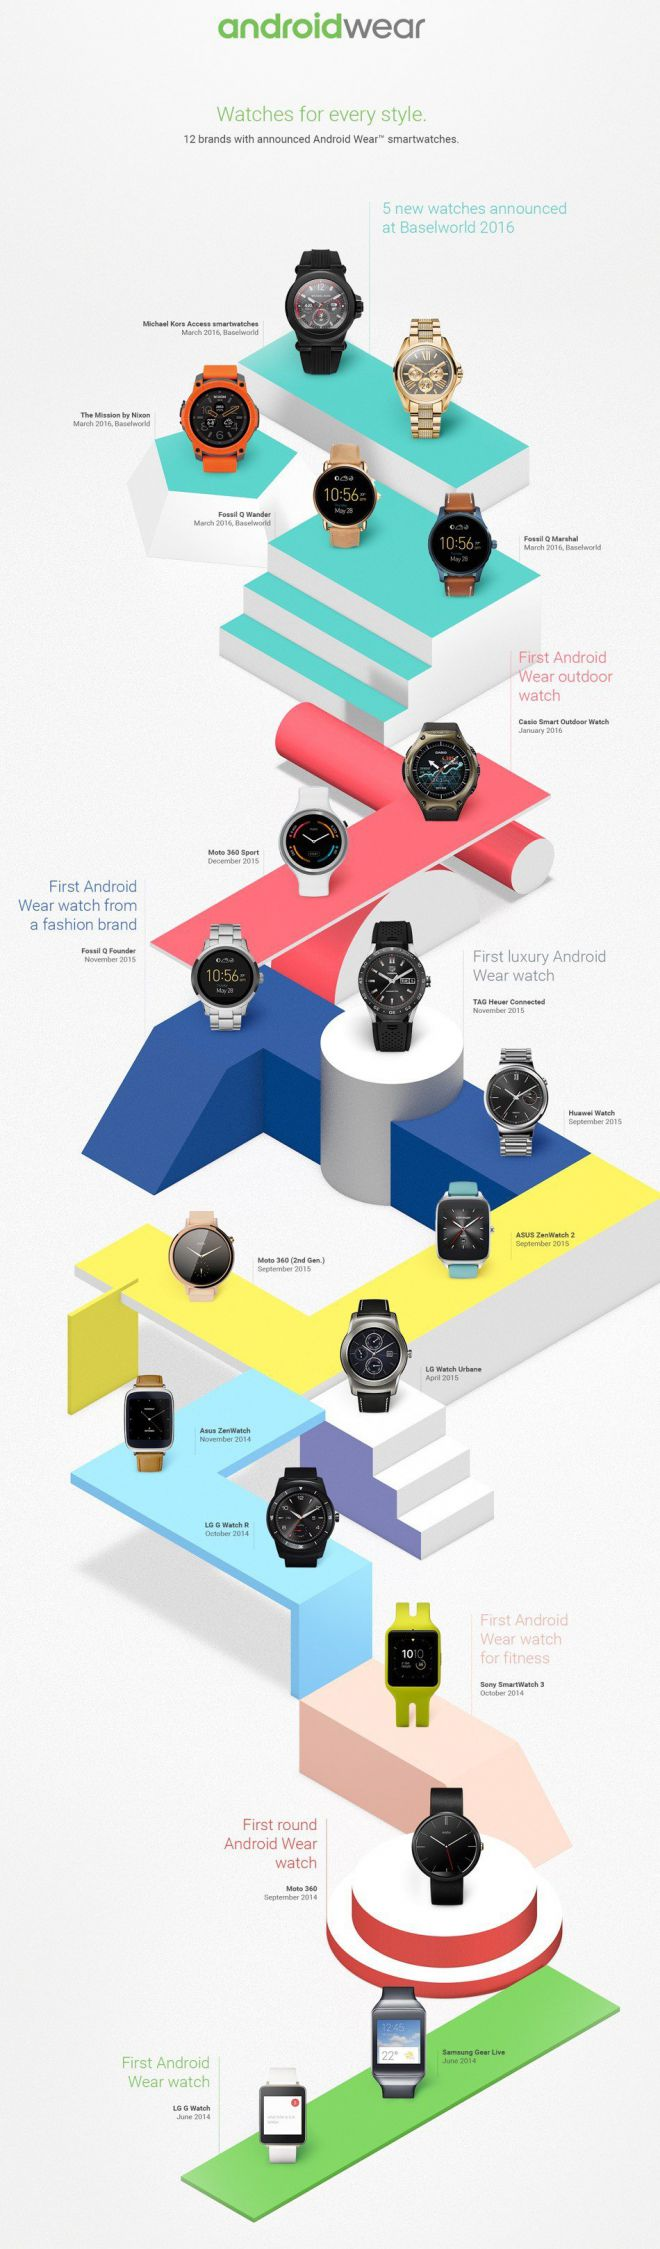 smartwatch-android-wear-full